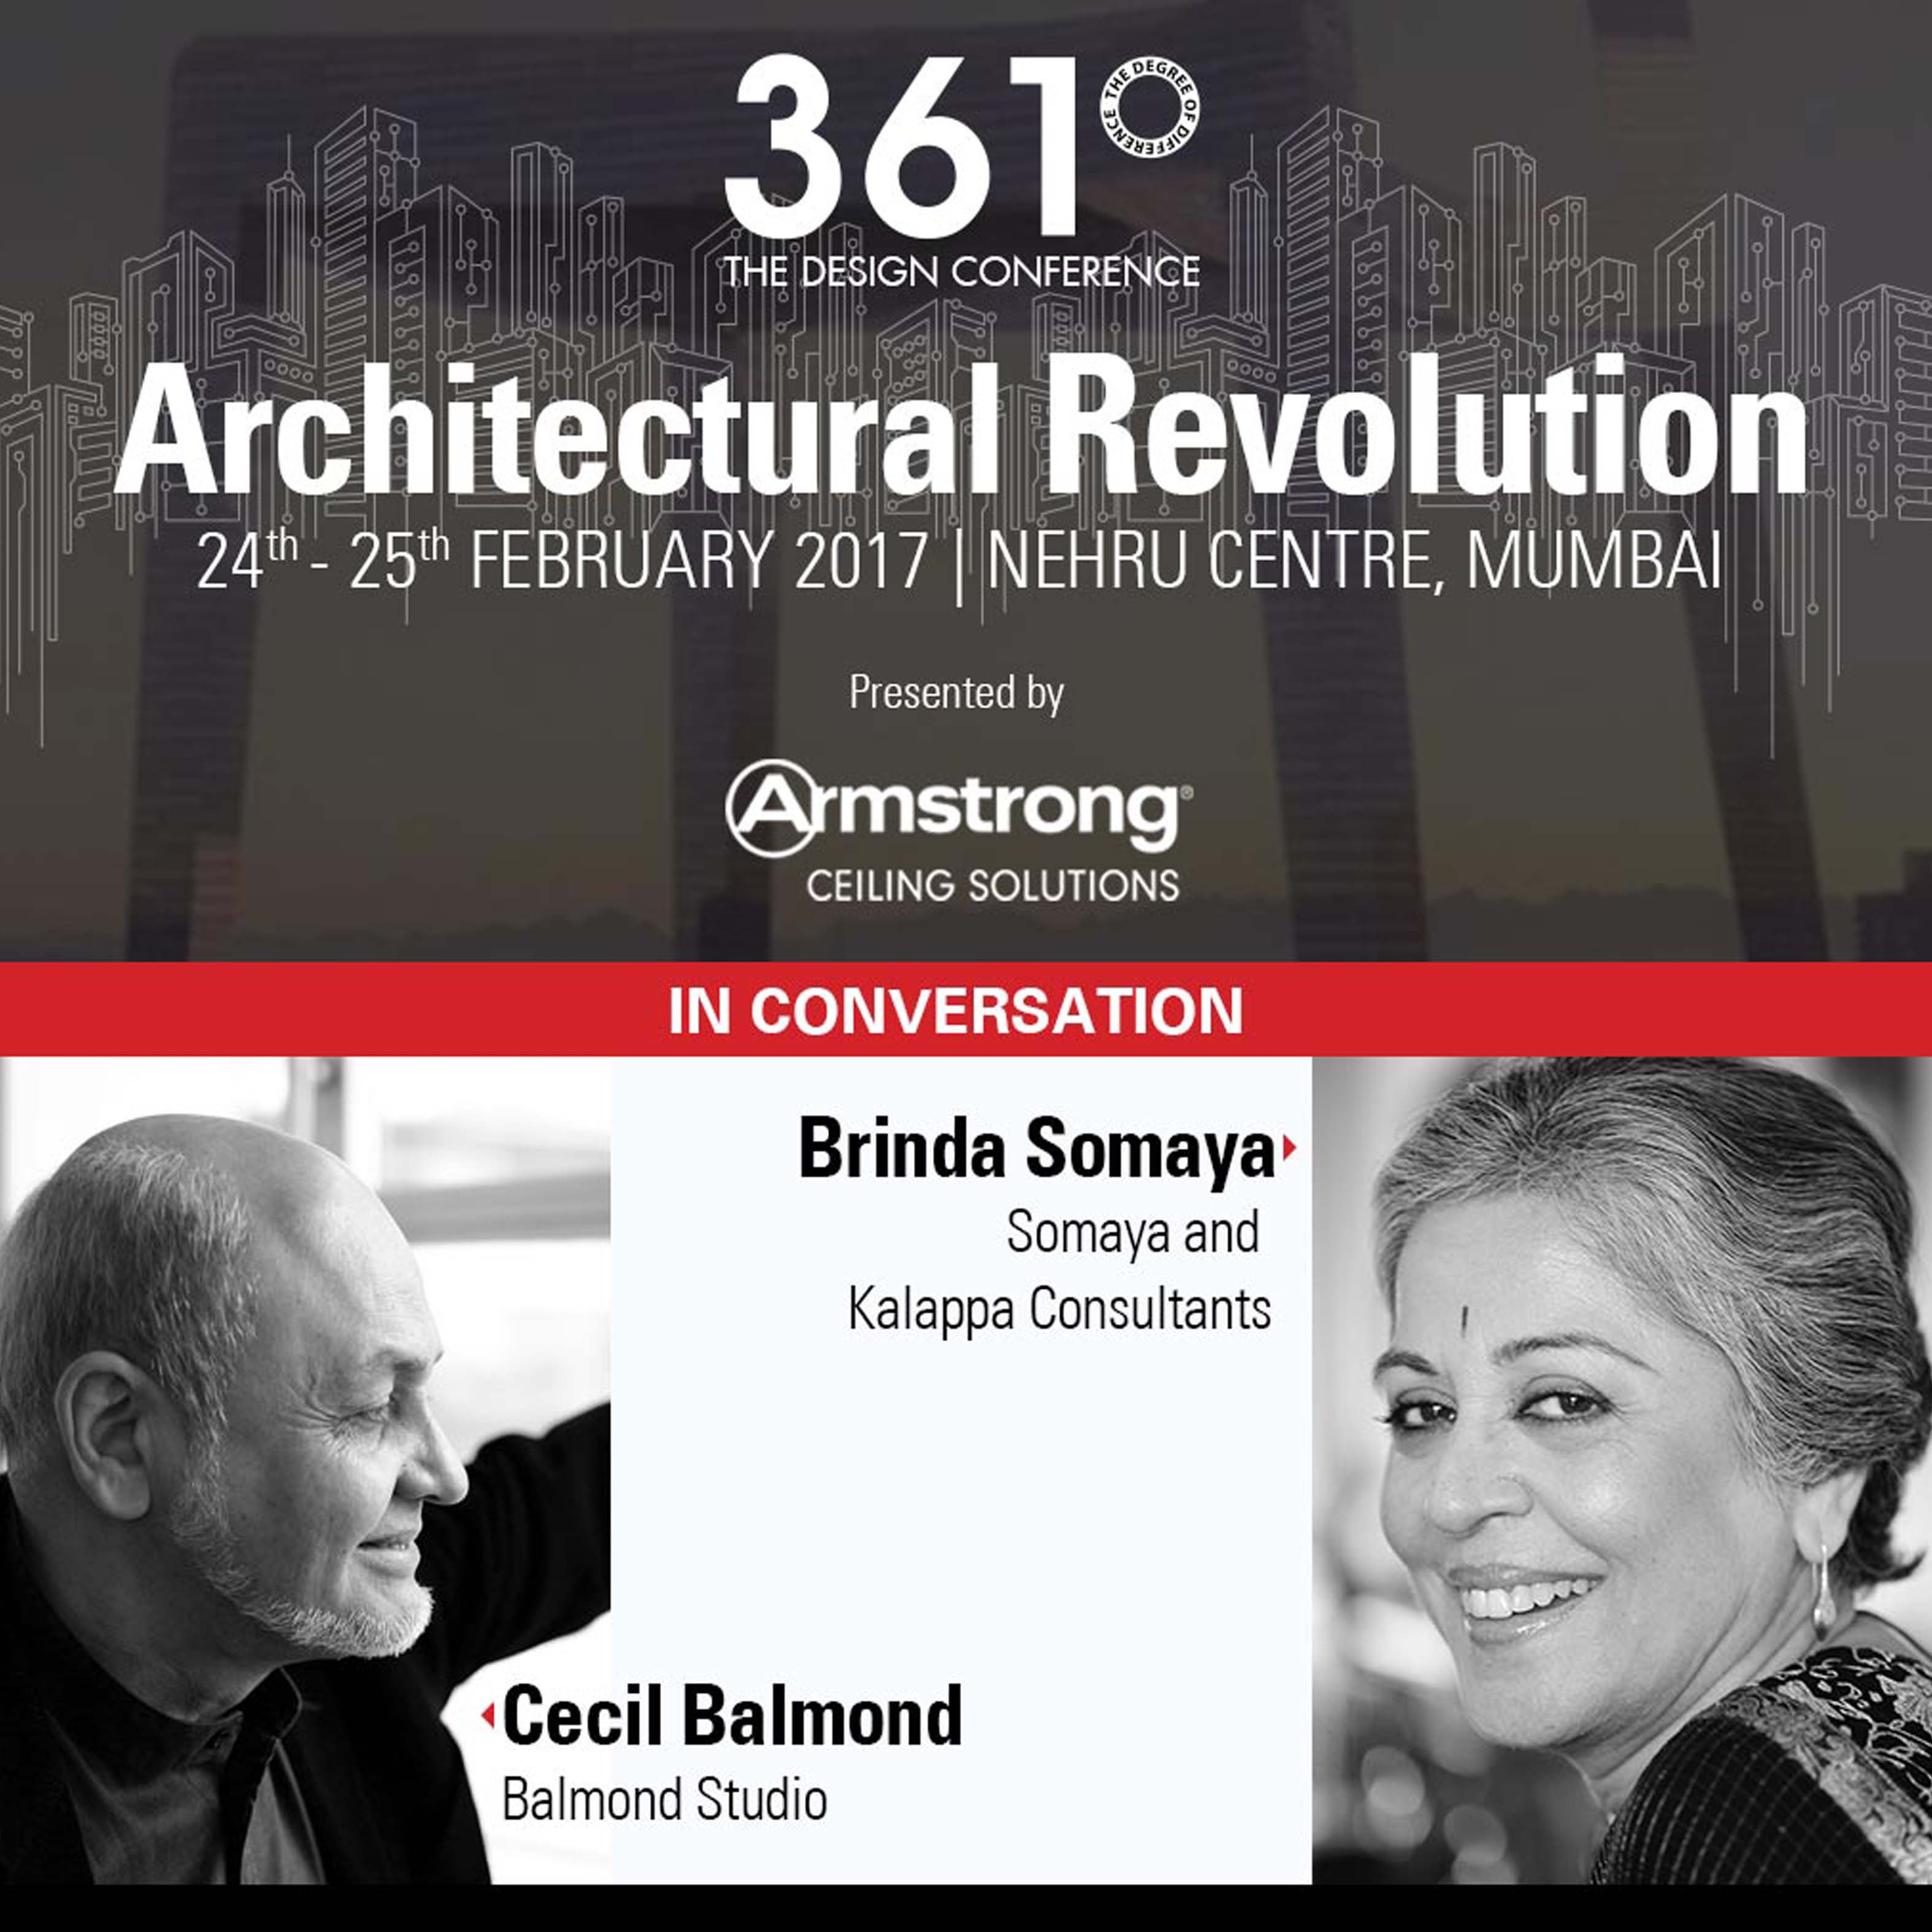 Cecil Balmond in conversation with Brinda Somaya at the 361 Conference 2017 presented by Armstrong Ceiling Solutions at Nehru Center, Mumbai - 24th and 25th February 2017